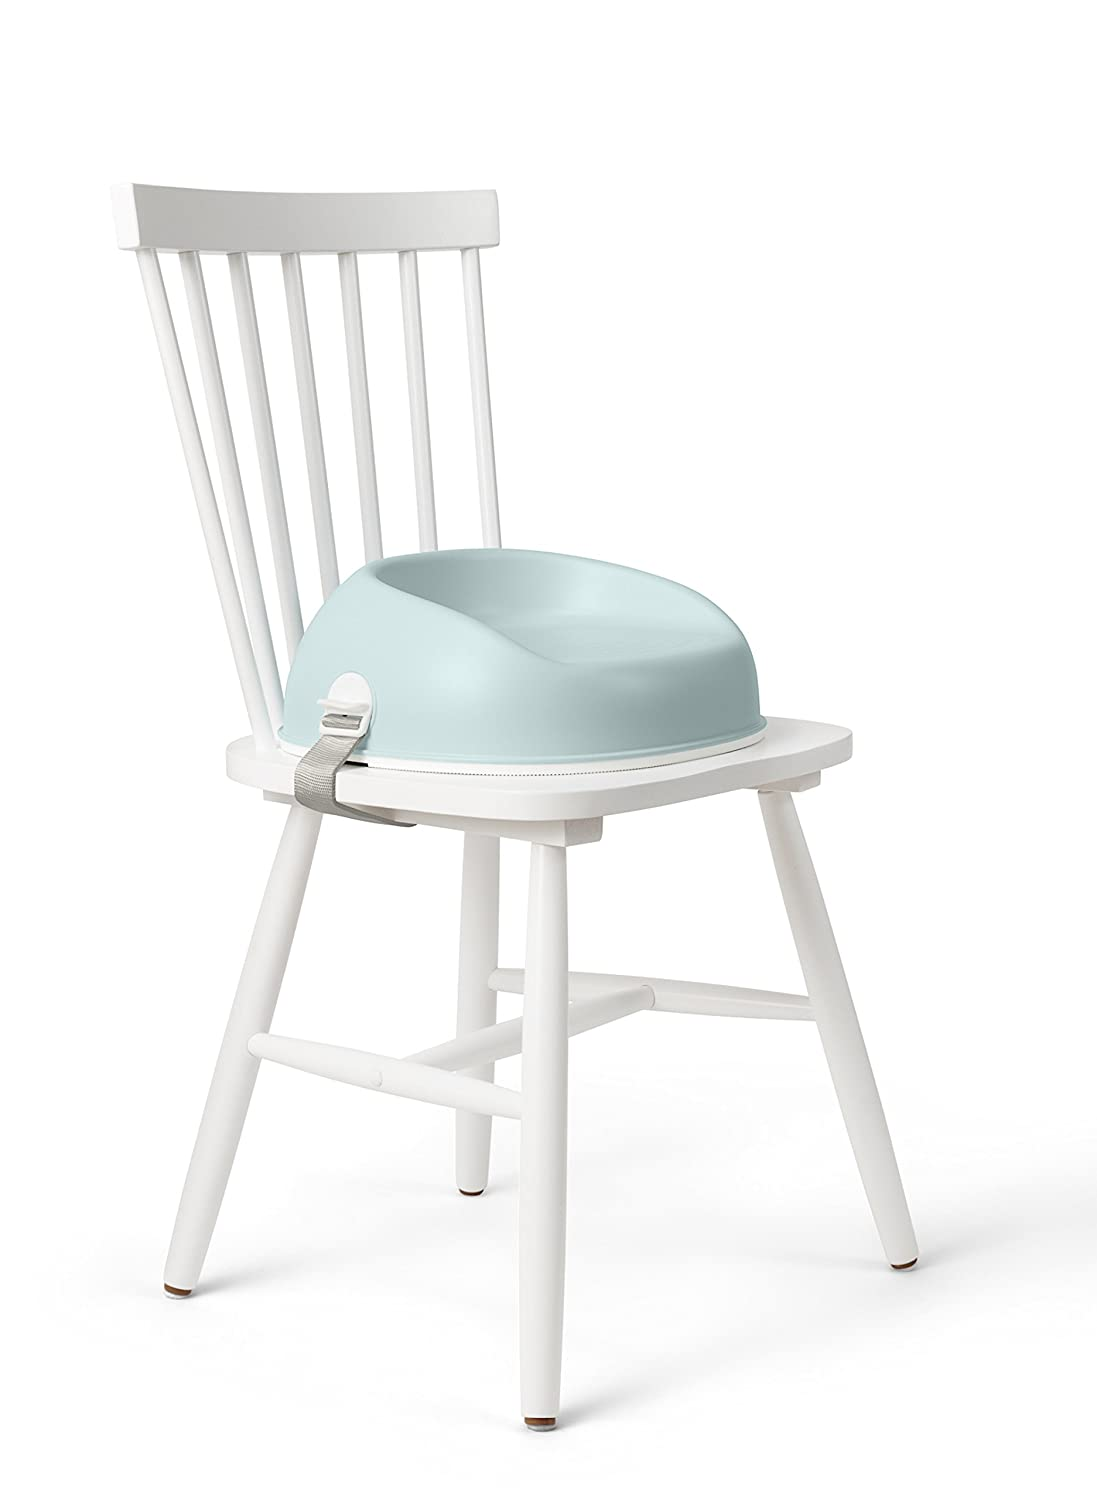 White BabyBjorn Booster Seat